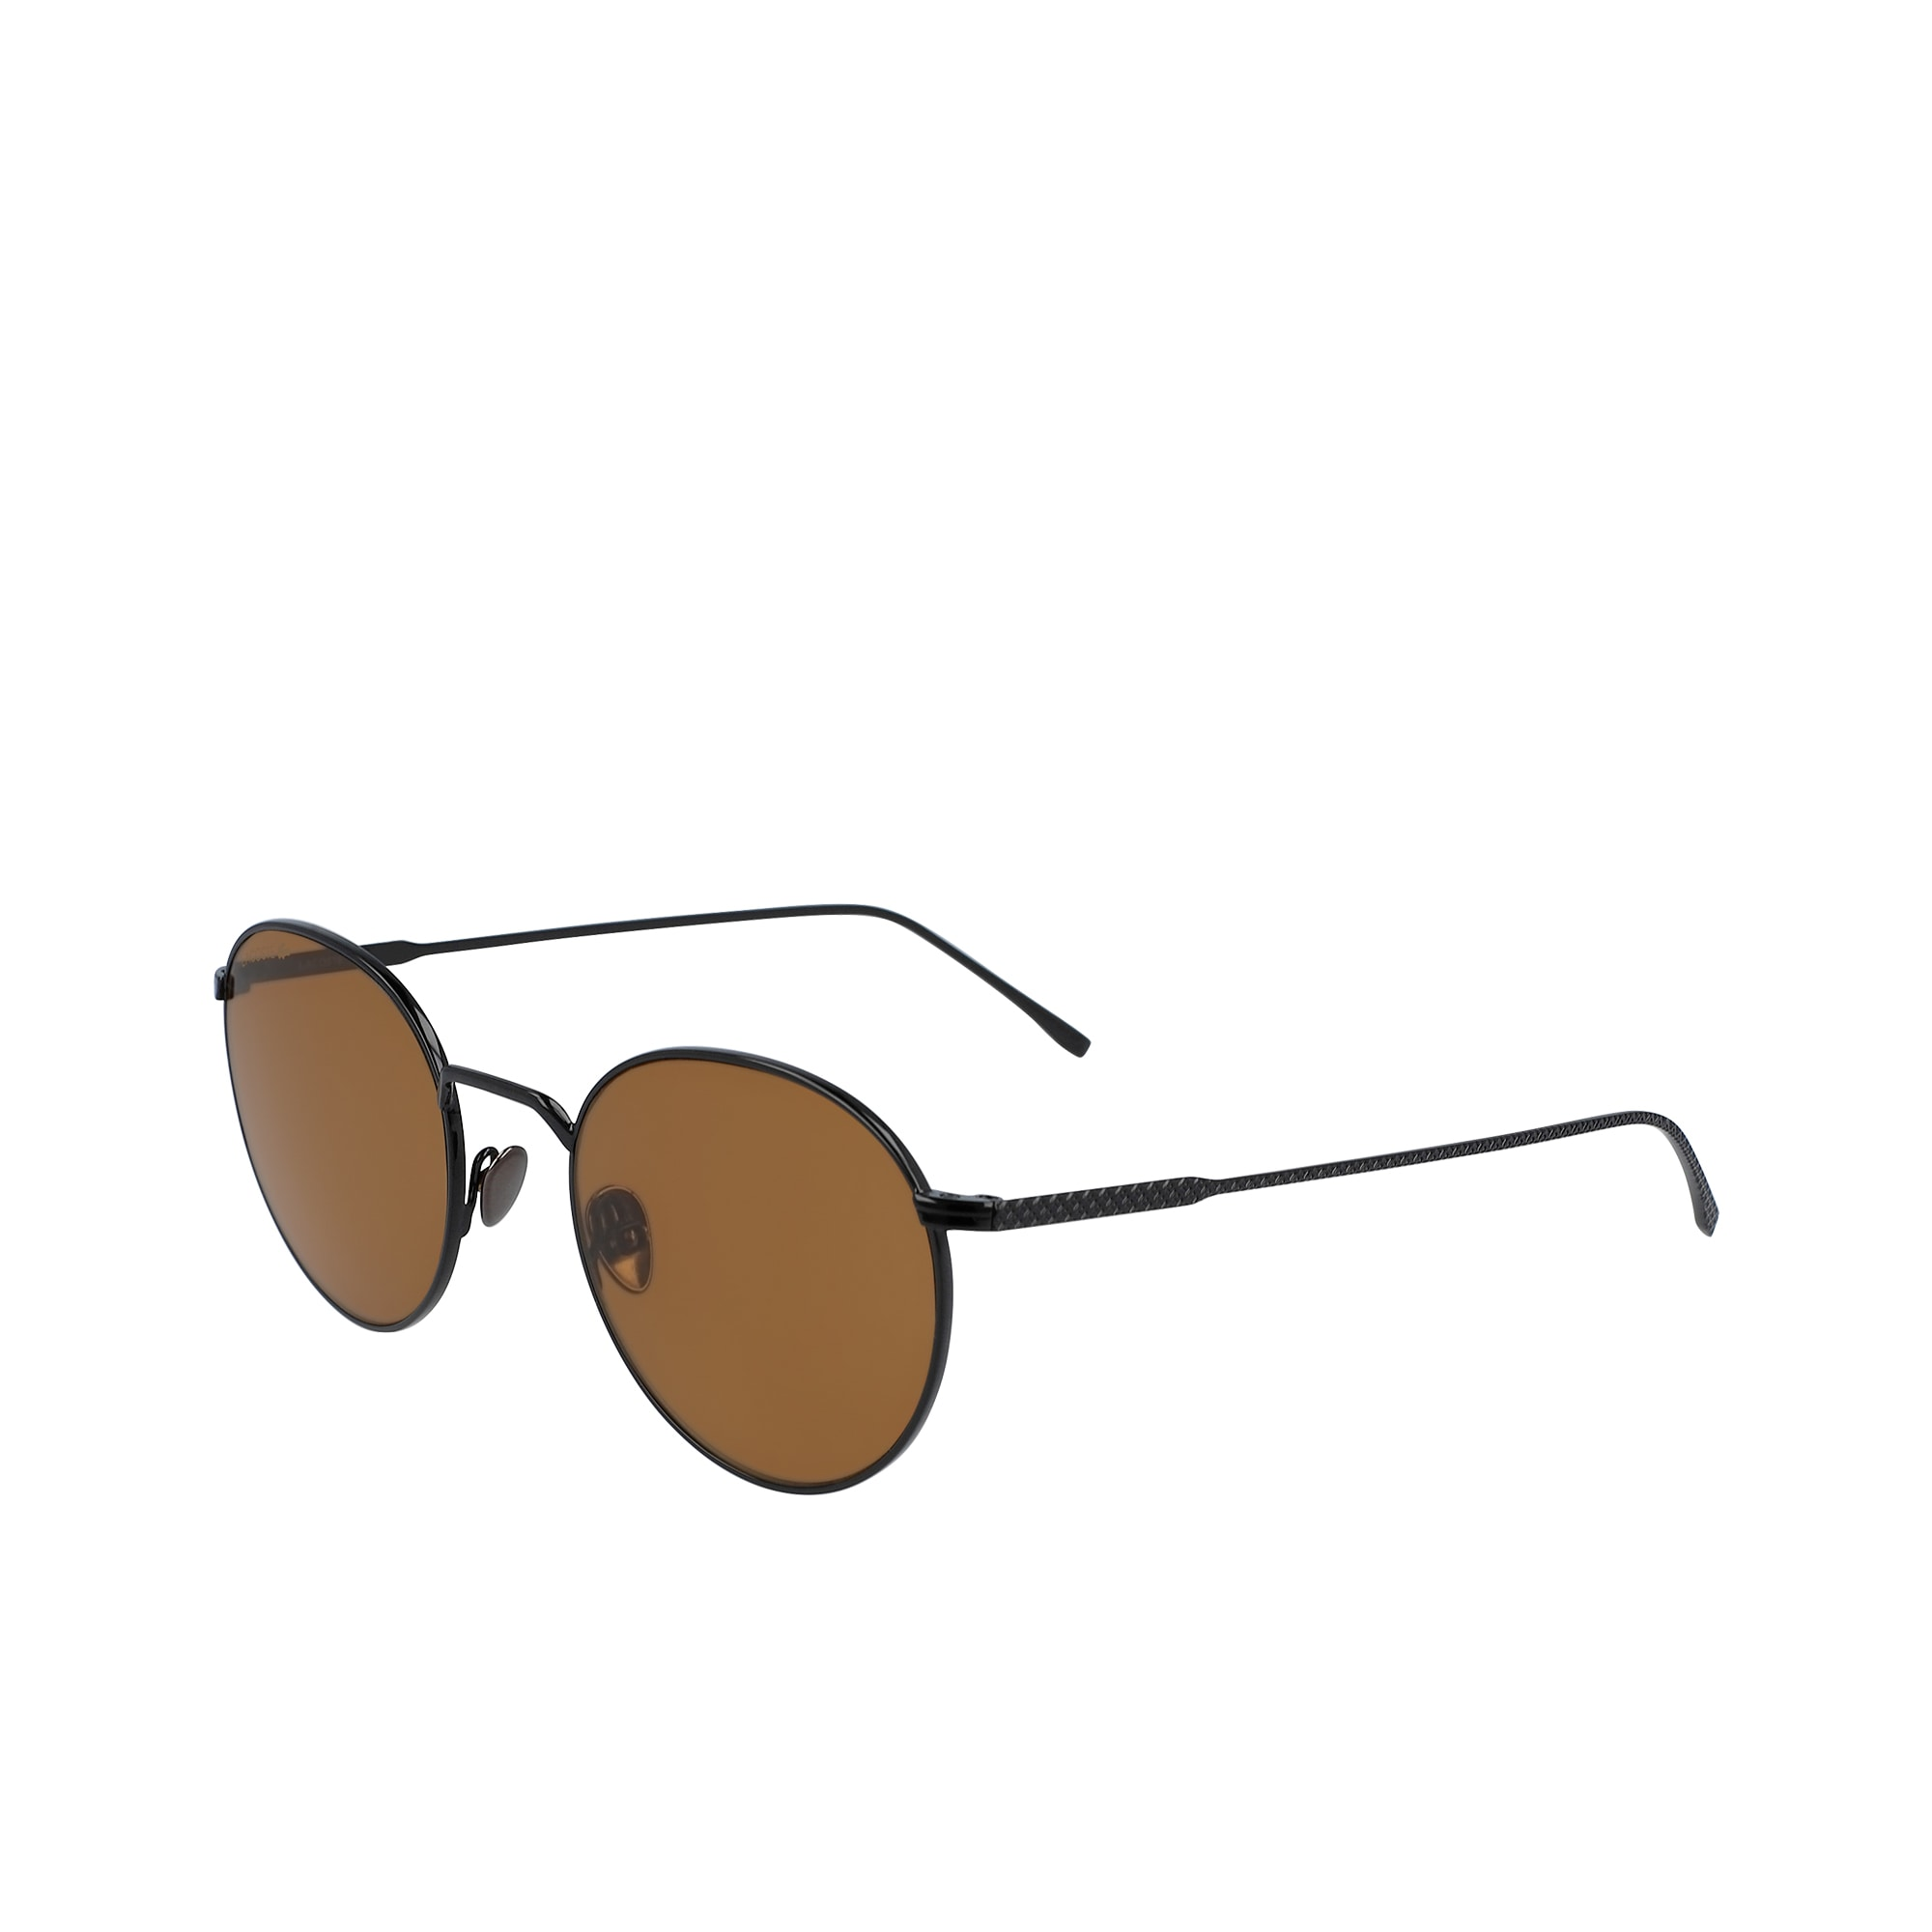 Round Metal Ultra Thin Sunglasses by Lacoste